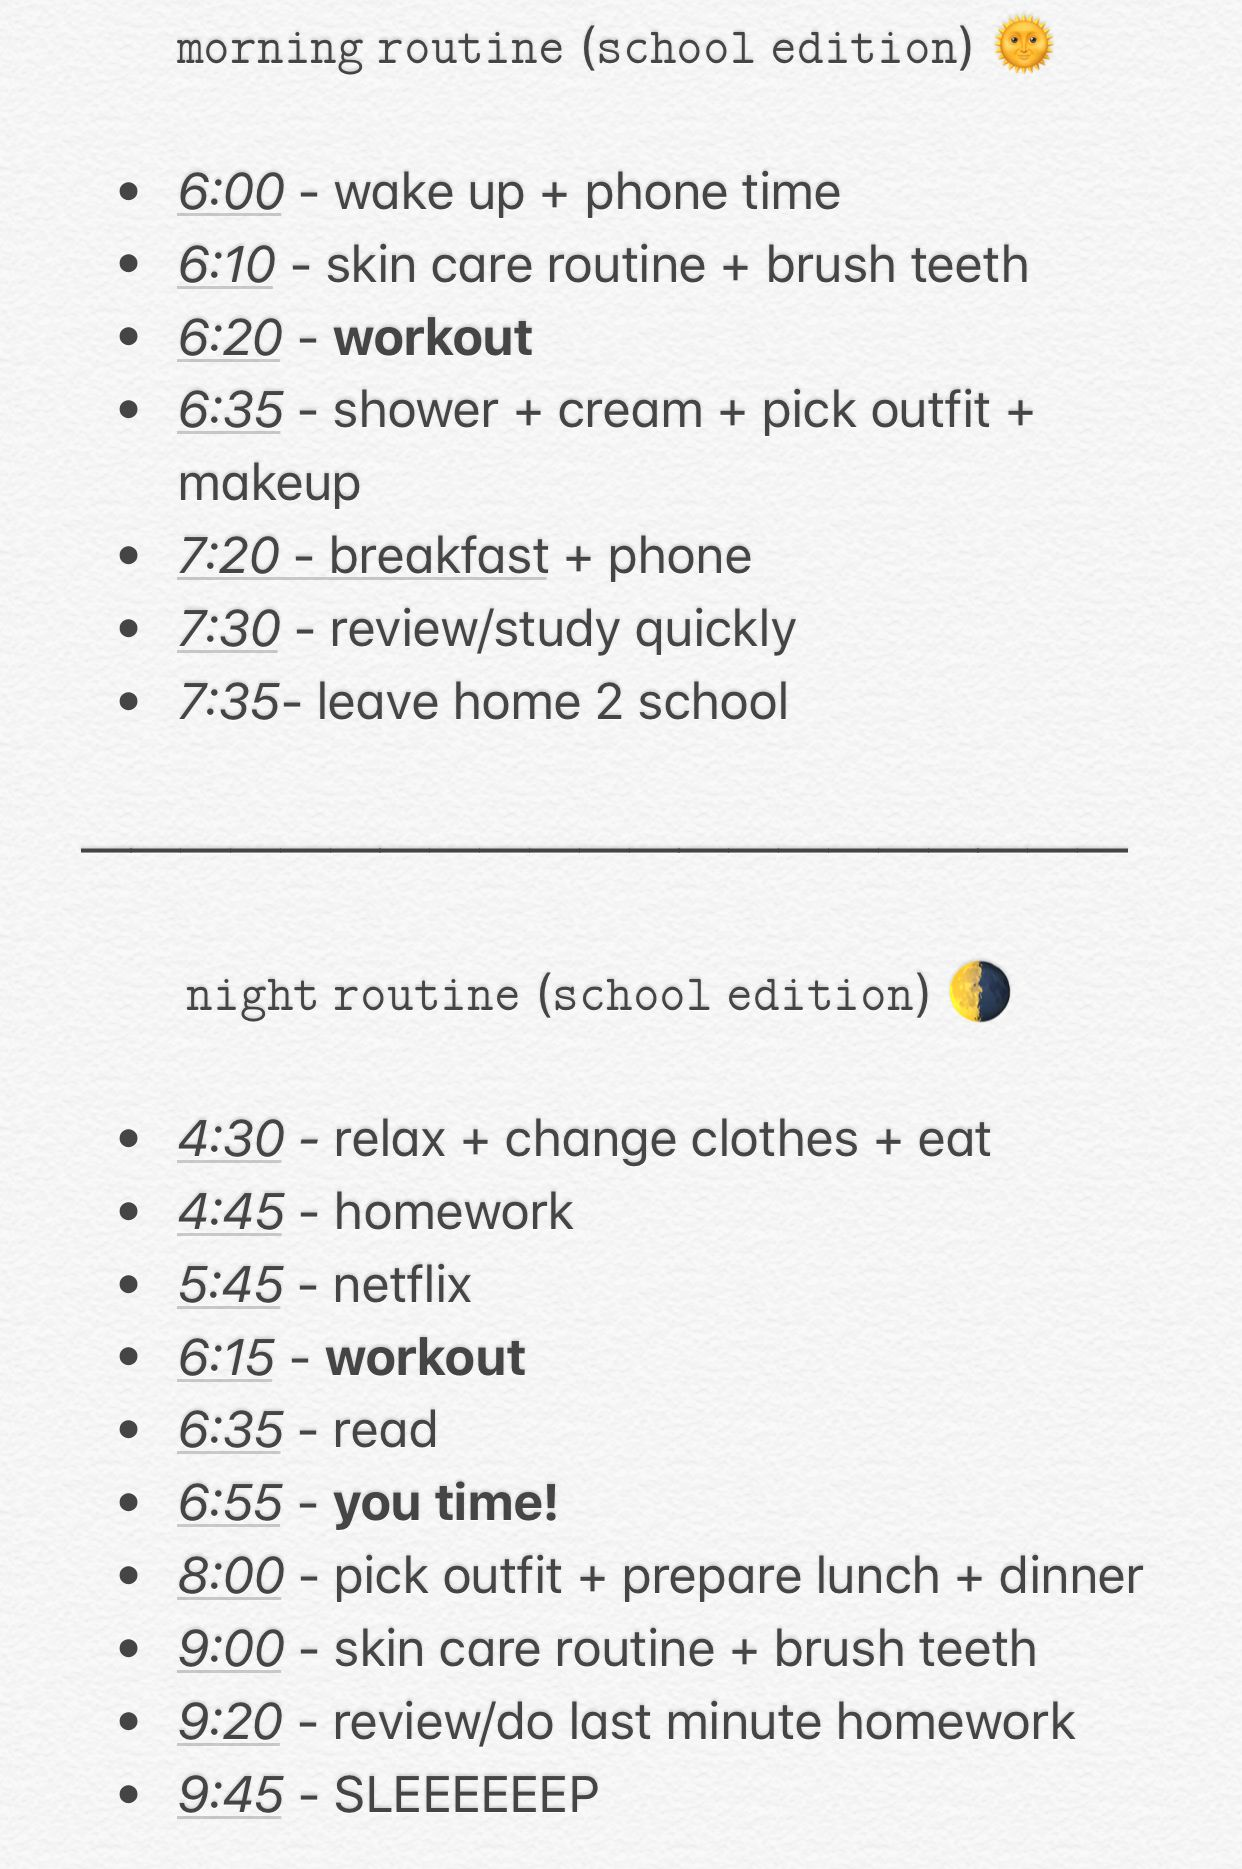 Pin by Azra on Self care in 2019 | Morning routine school